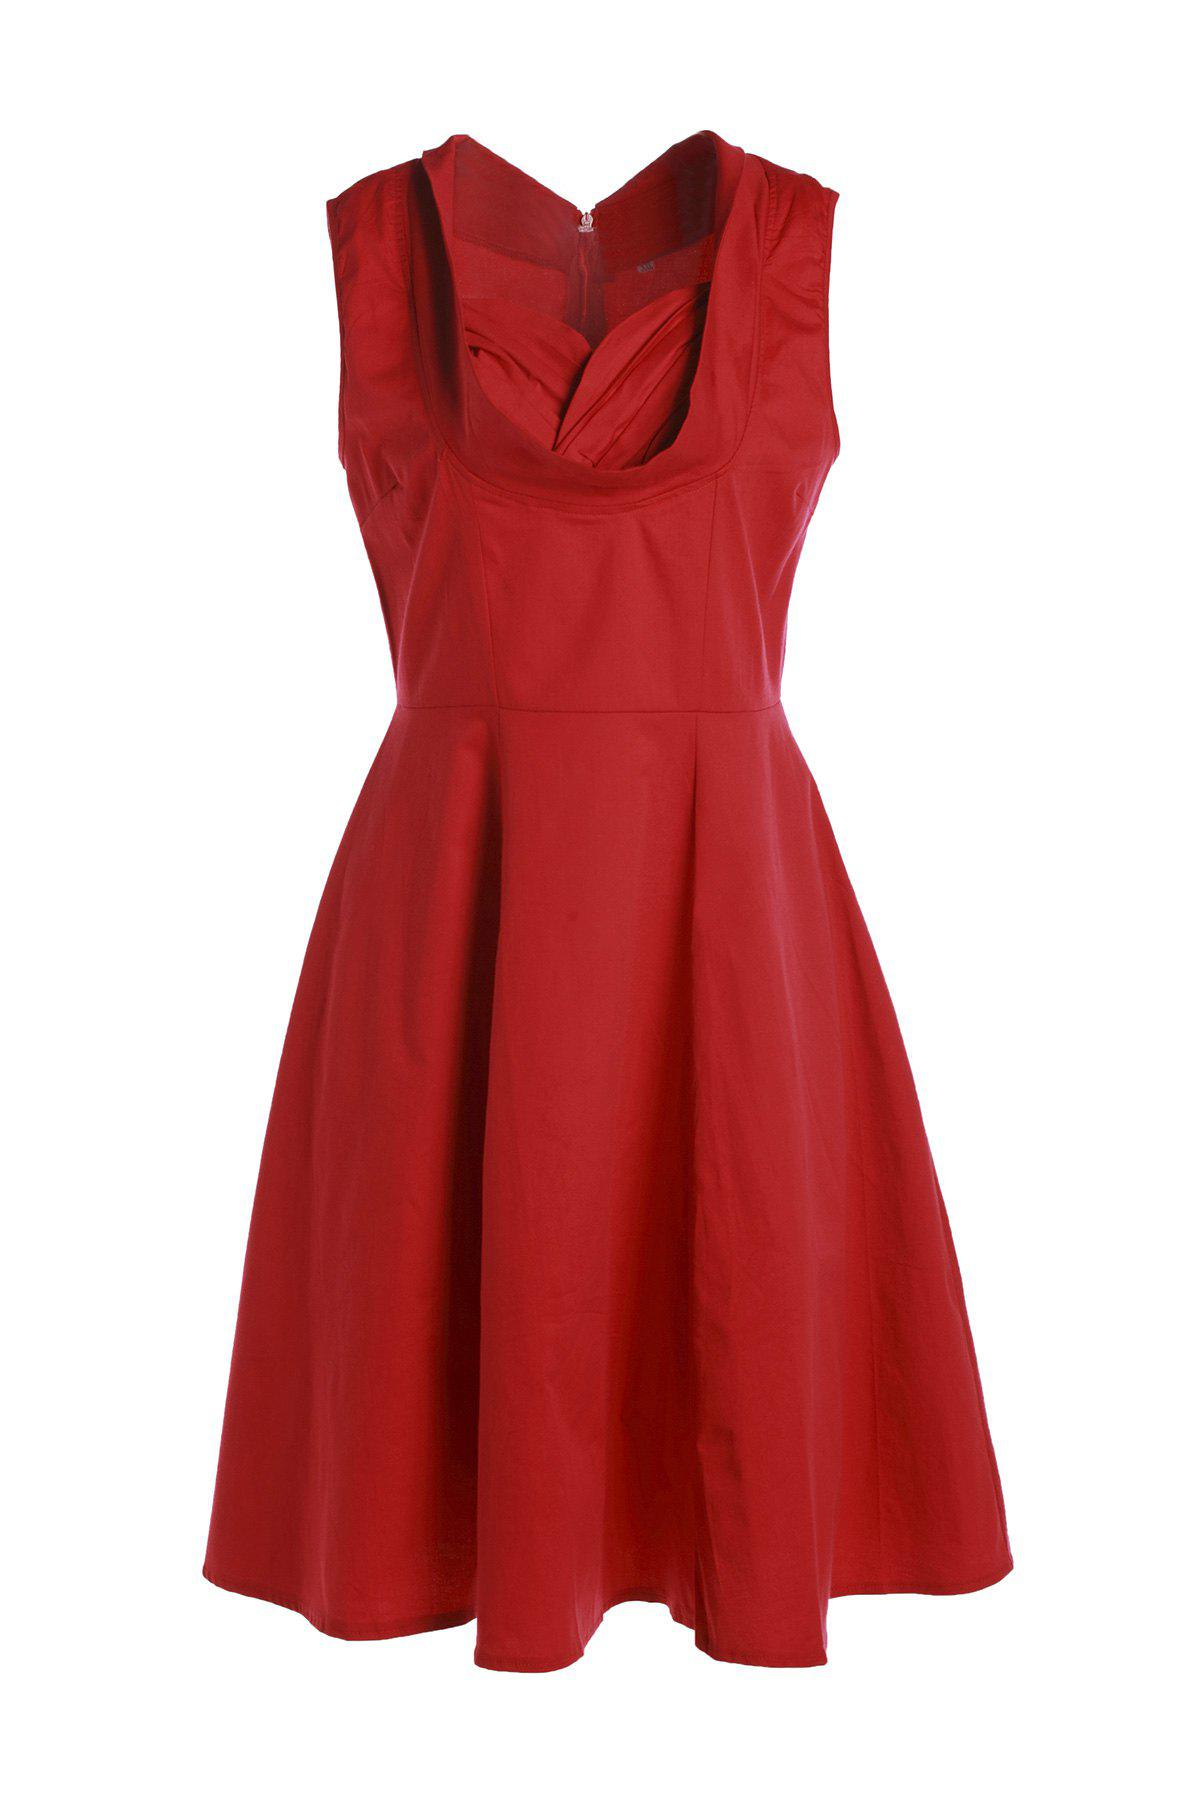 Vintage Sweetheart Neck Sleeveless Ball Gown Solid Color Womens DressWomen<br><br><br>Size: L<br>Color: RED